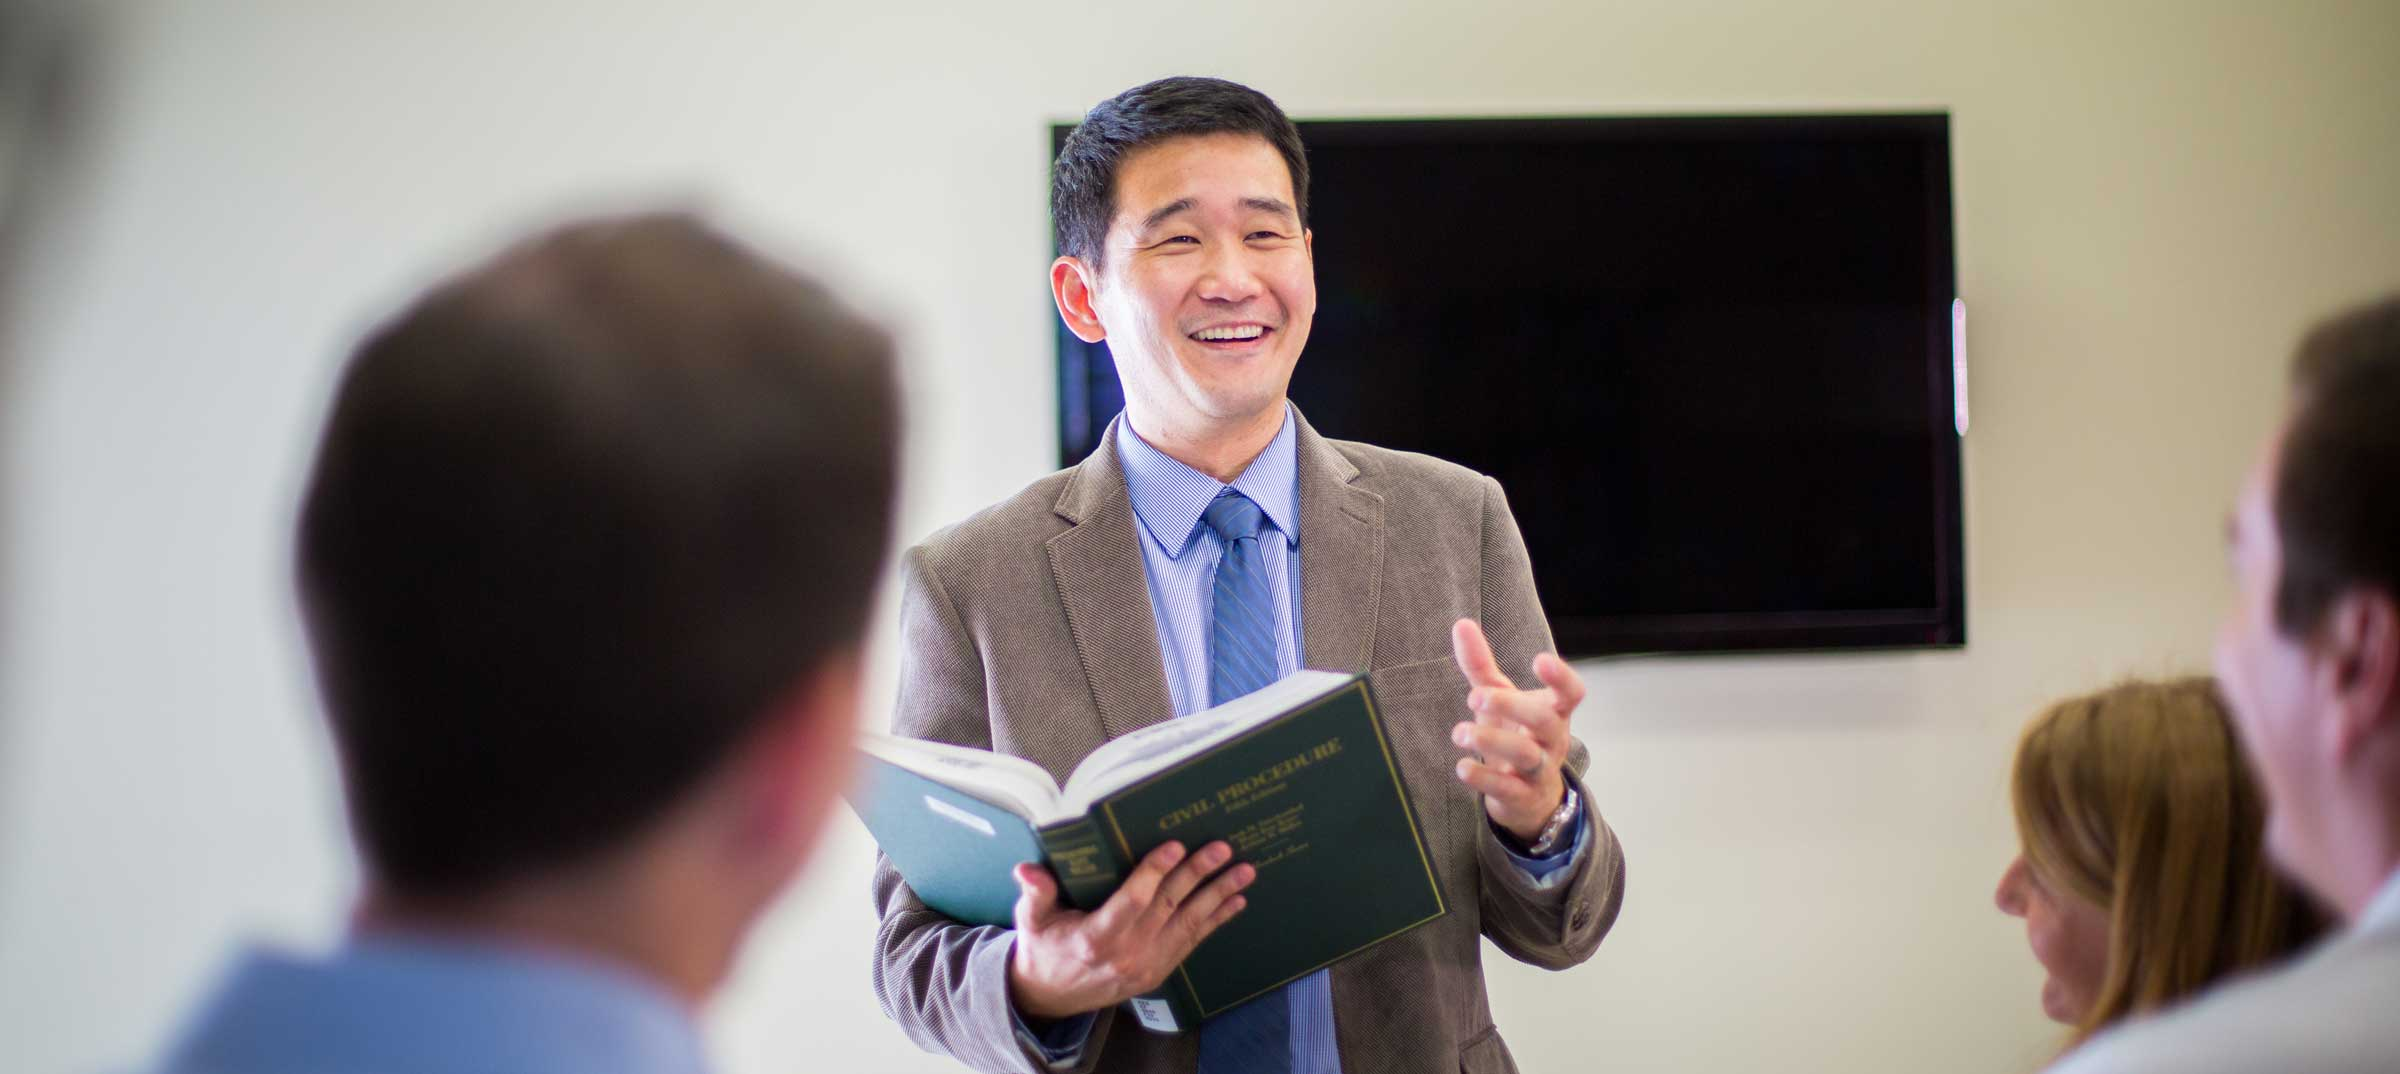 NBC News: 'Policy Nerd' Dave Min Wants to Give Up Academia for a Seat in Congress